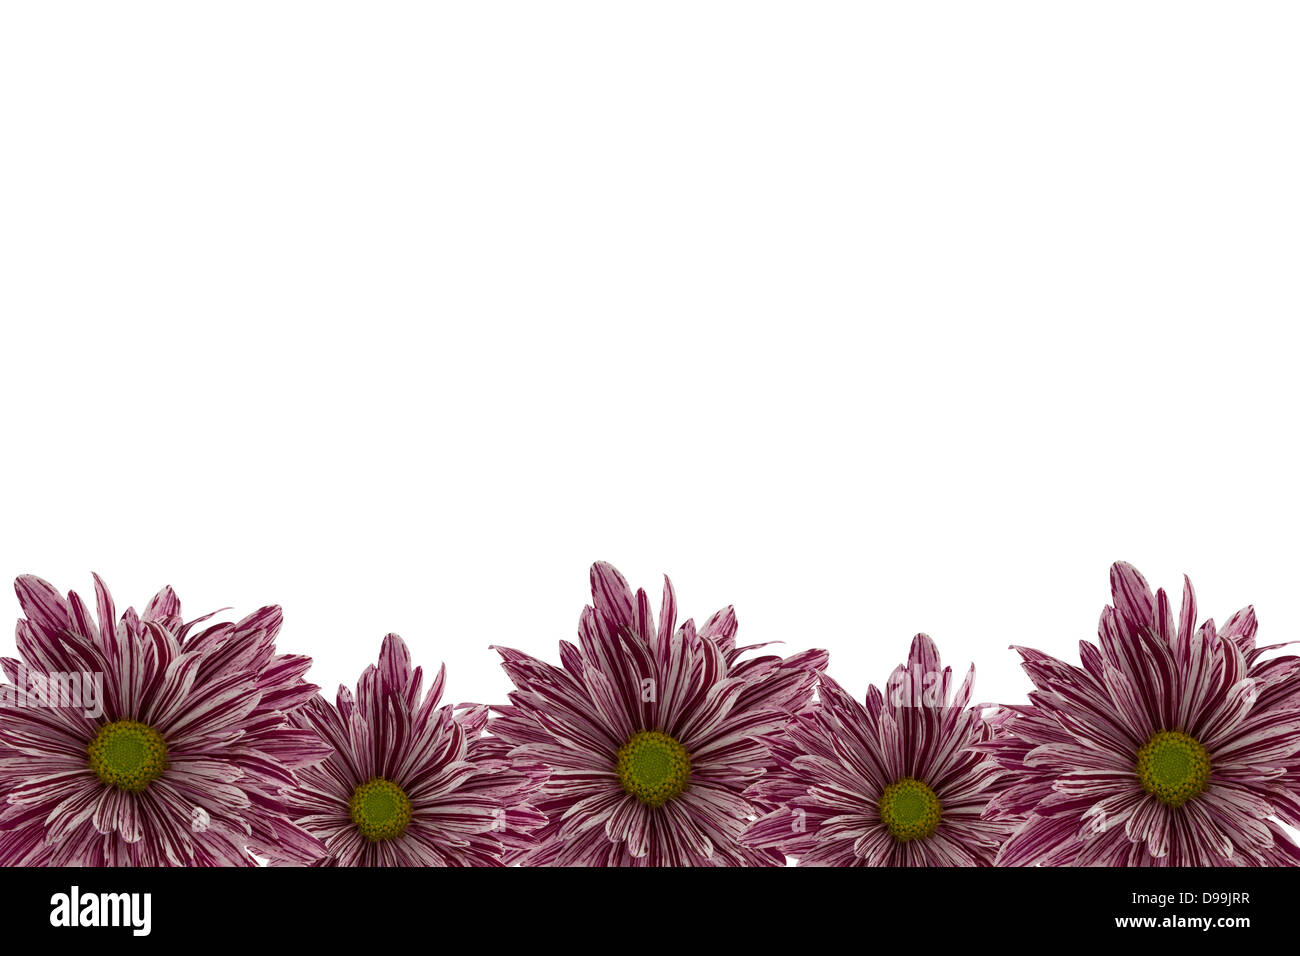 Red chrysanthemum border with a white background. - Stock Image